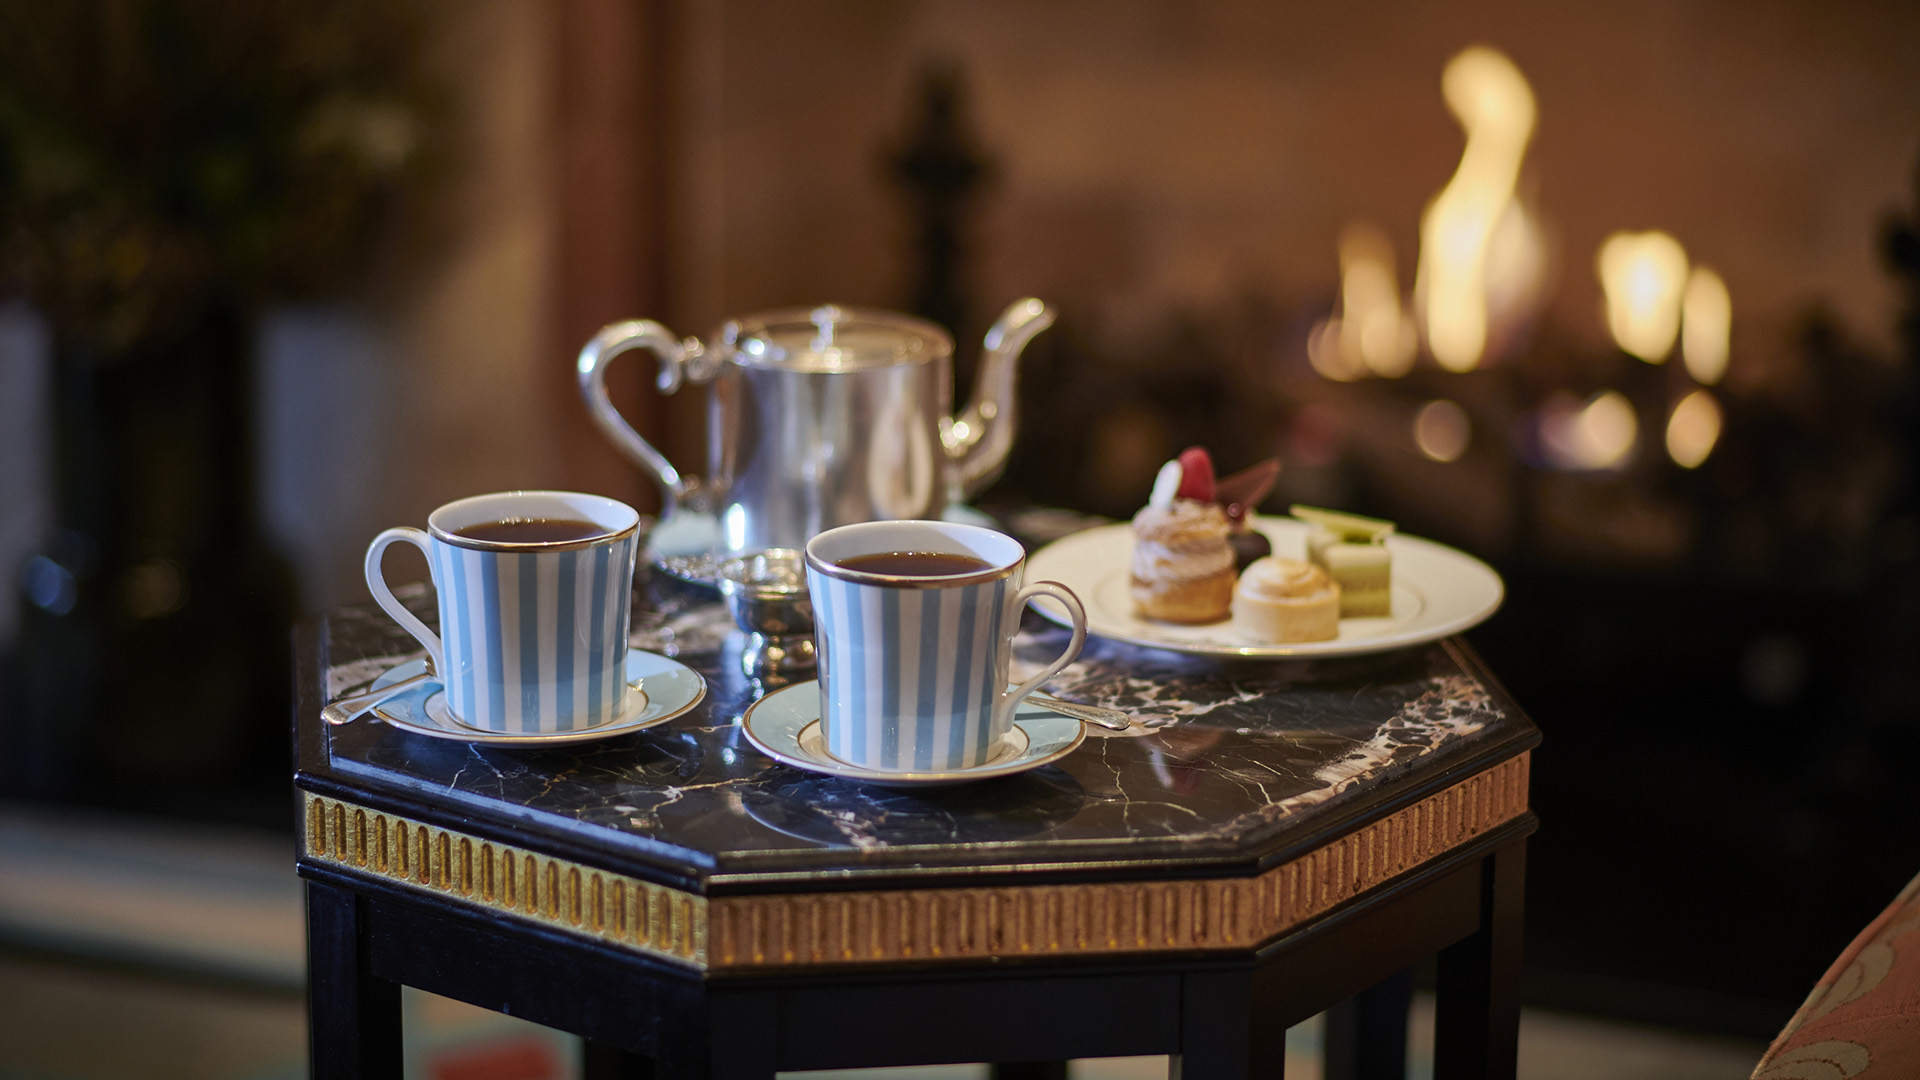 Afternoon Tea by the fireside at The Westbury hotel